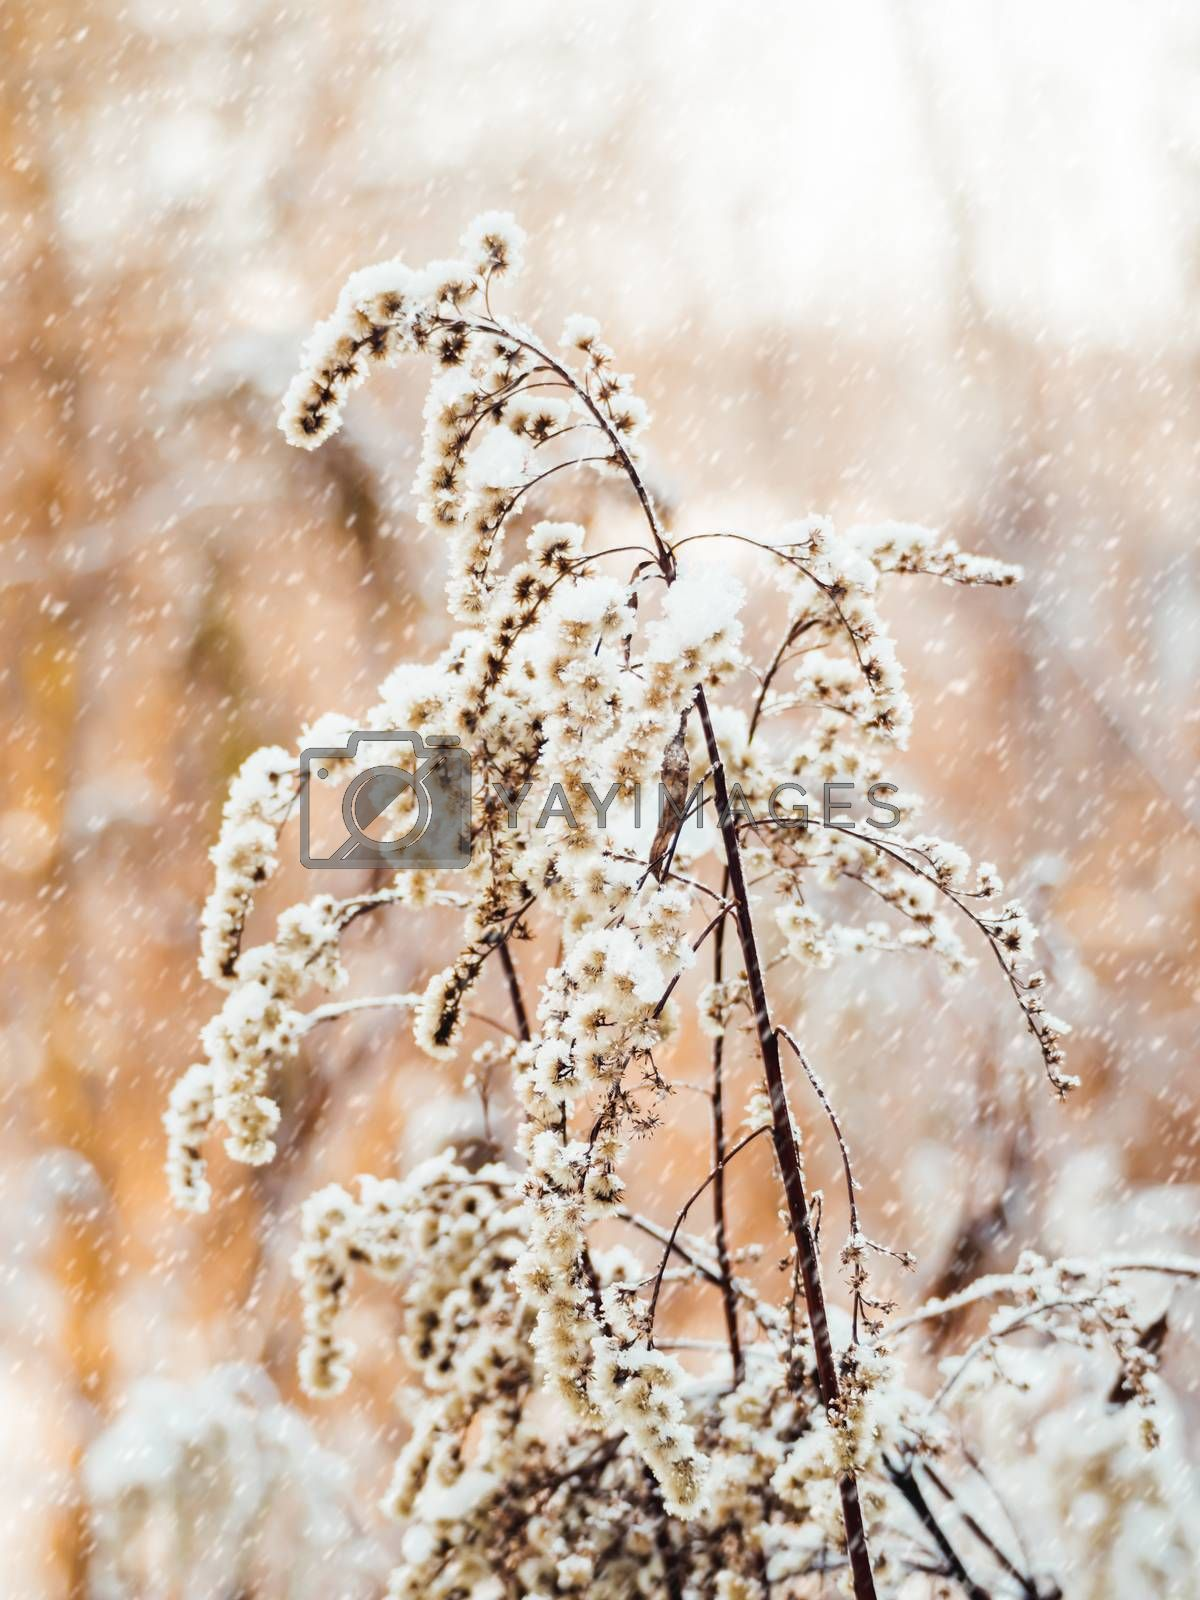 Dried grass under the snow. Snowfall in forest. Winter season. N by aksenovko